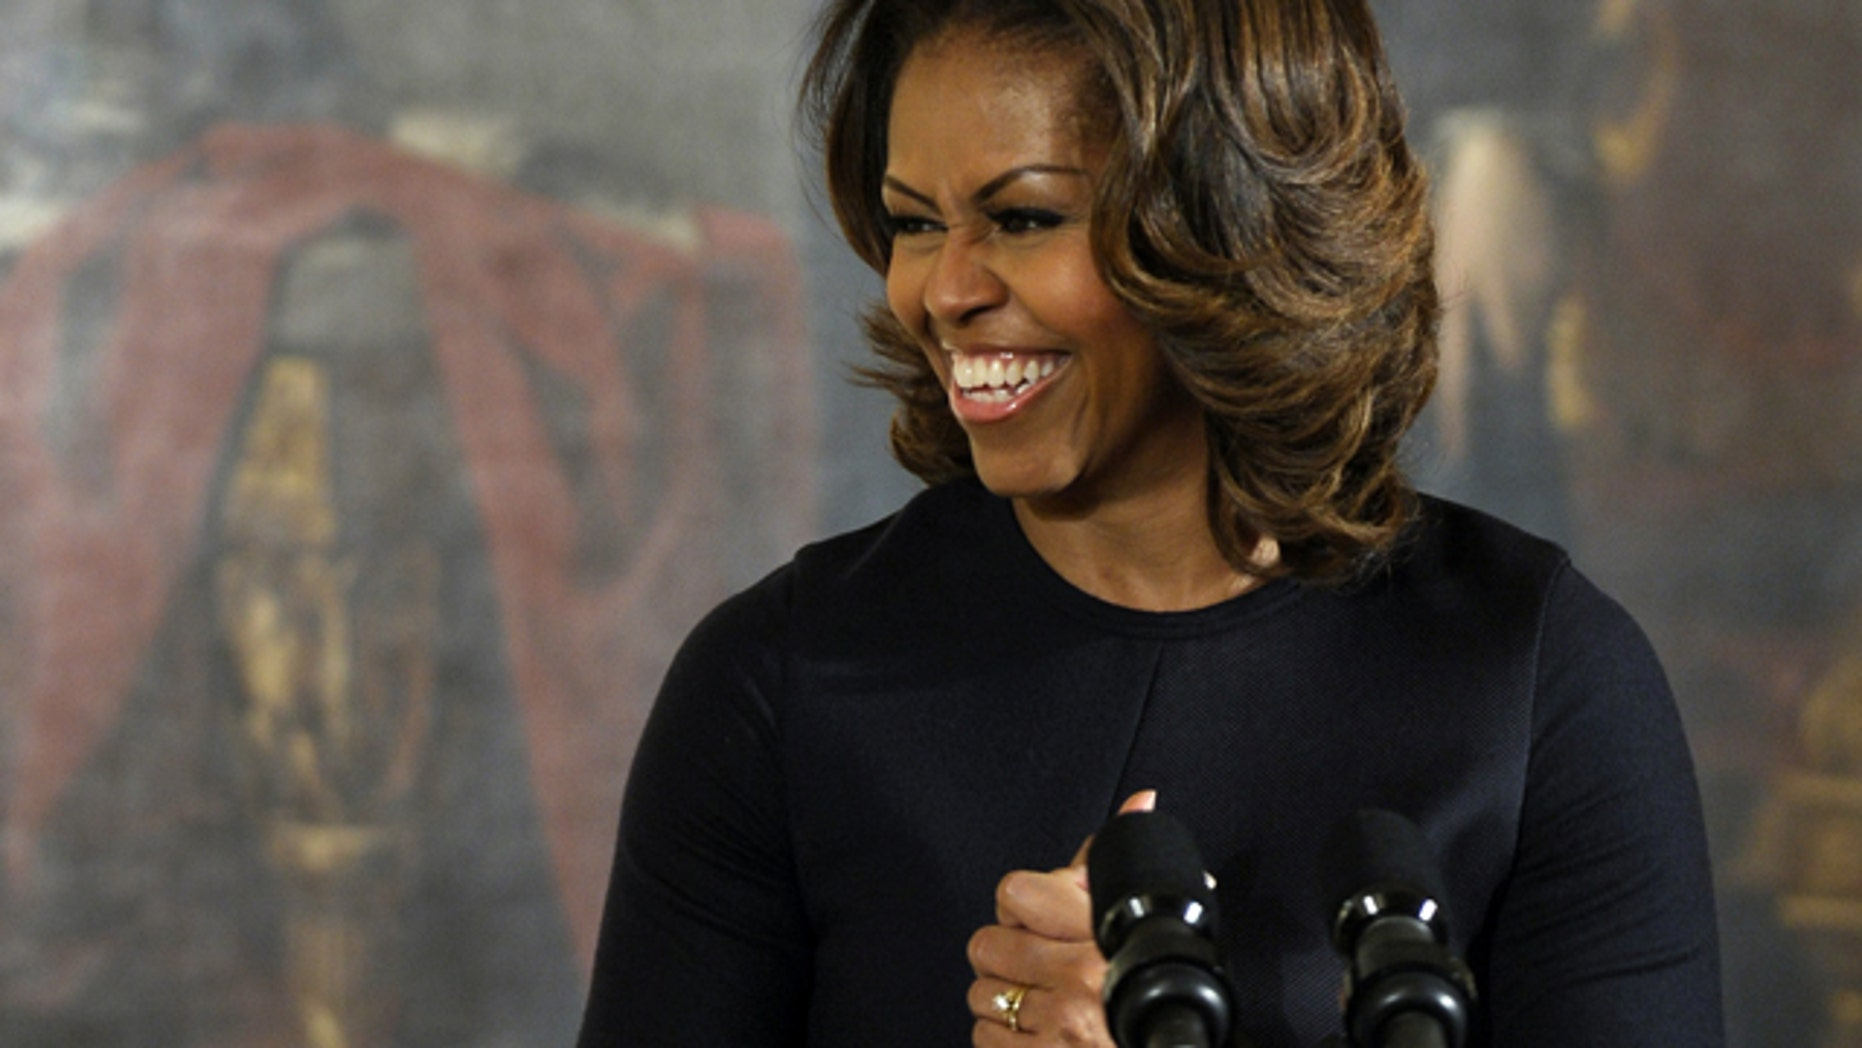 First lady Michelle Obama speaks in the East Room of the White House in Washington, Friday, Nov. 22, 2013, before presenting the Presidentâs Committee on the Arts and the Humanities (PCAH) National Arts and Humanities Youth Program Awards. (AP Photo/Susan Walsh)